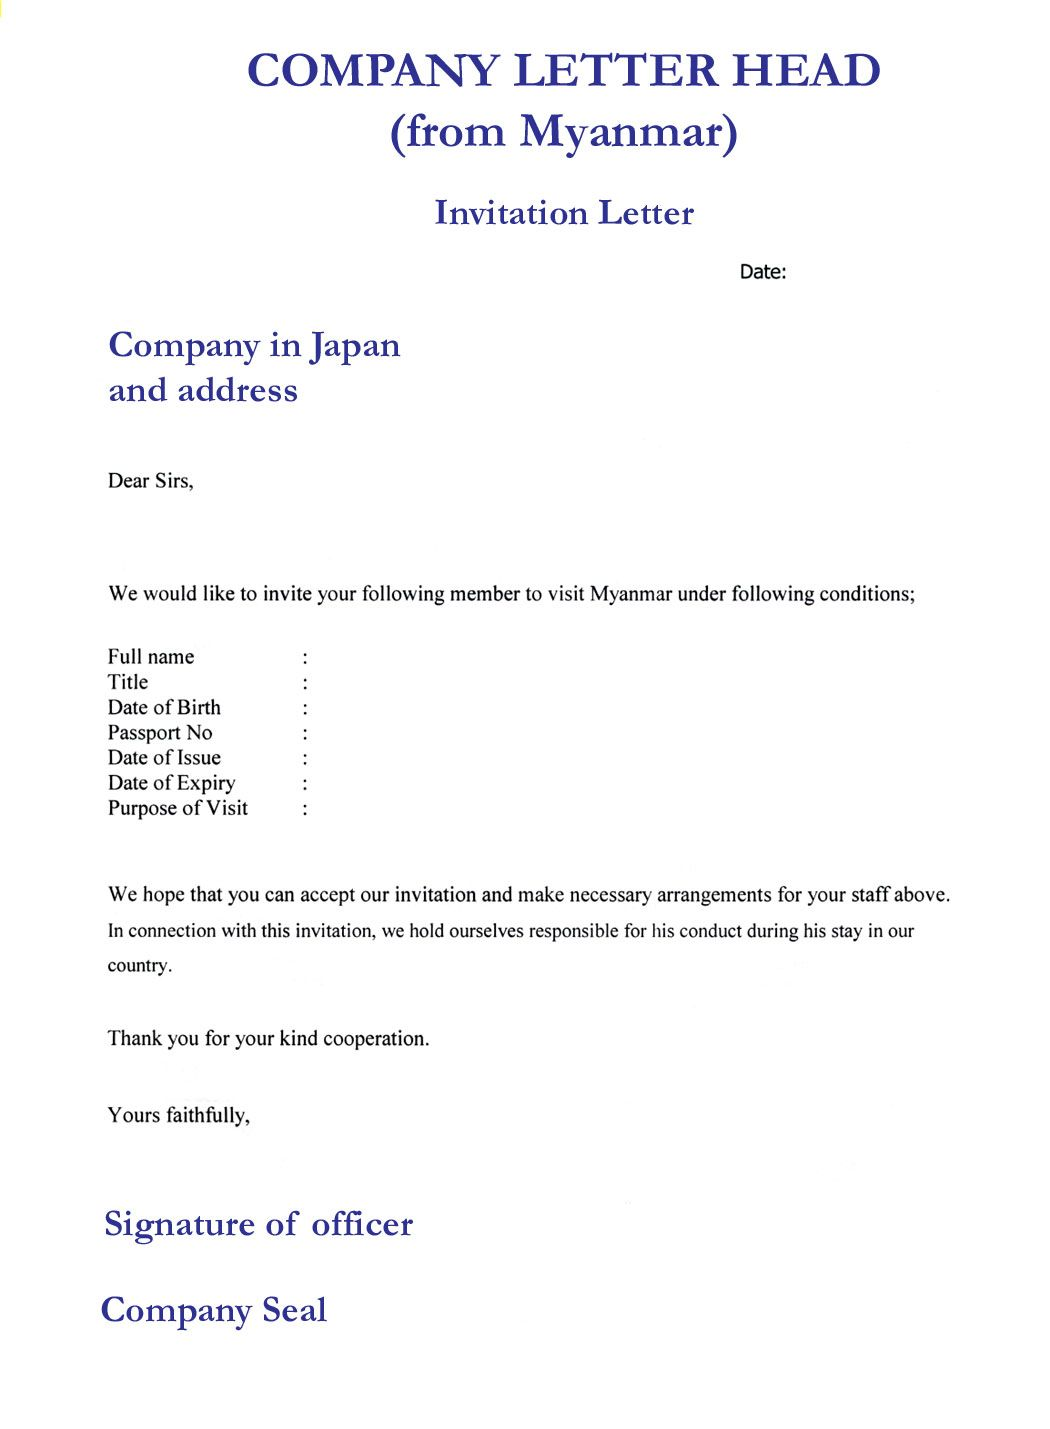 Reference Letter Format For Visa. Recommendation letter for visa application  It s never easy asking your current boss a